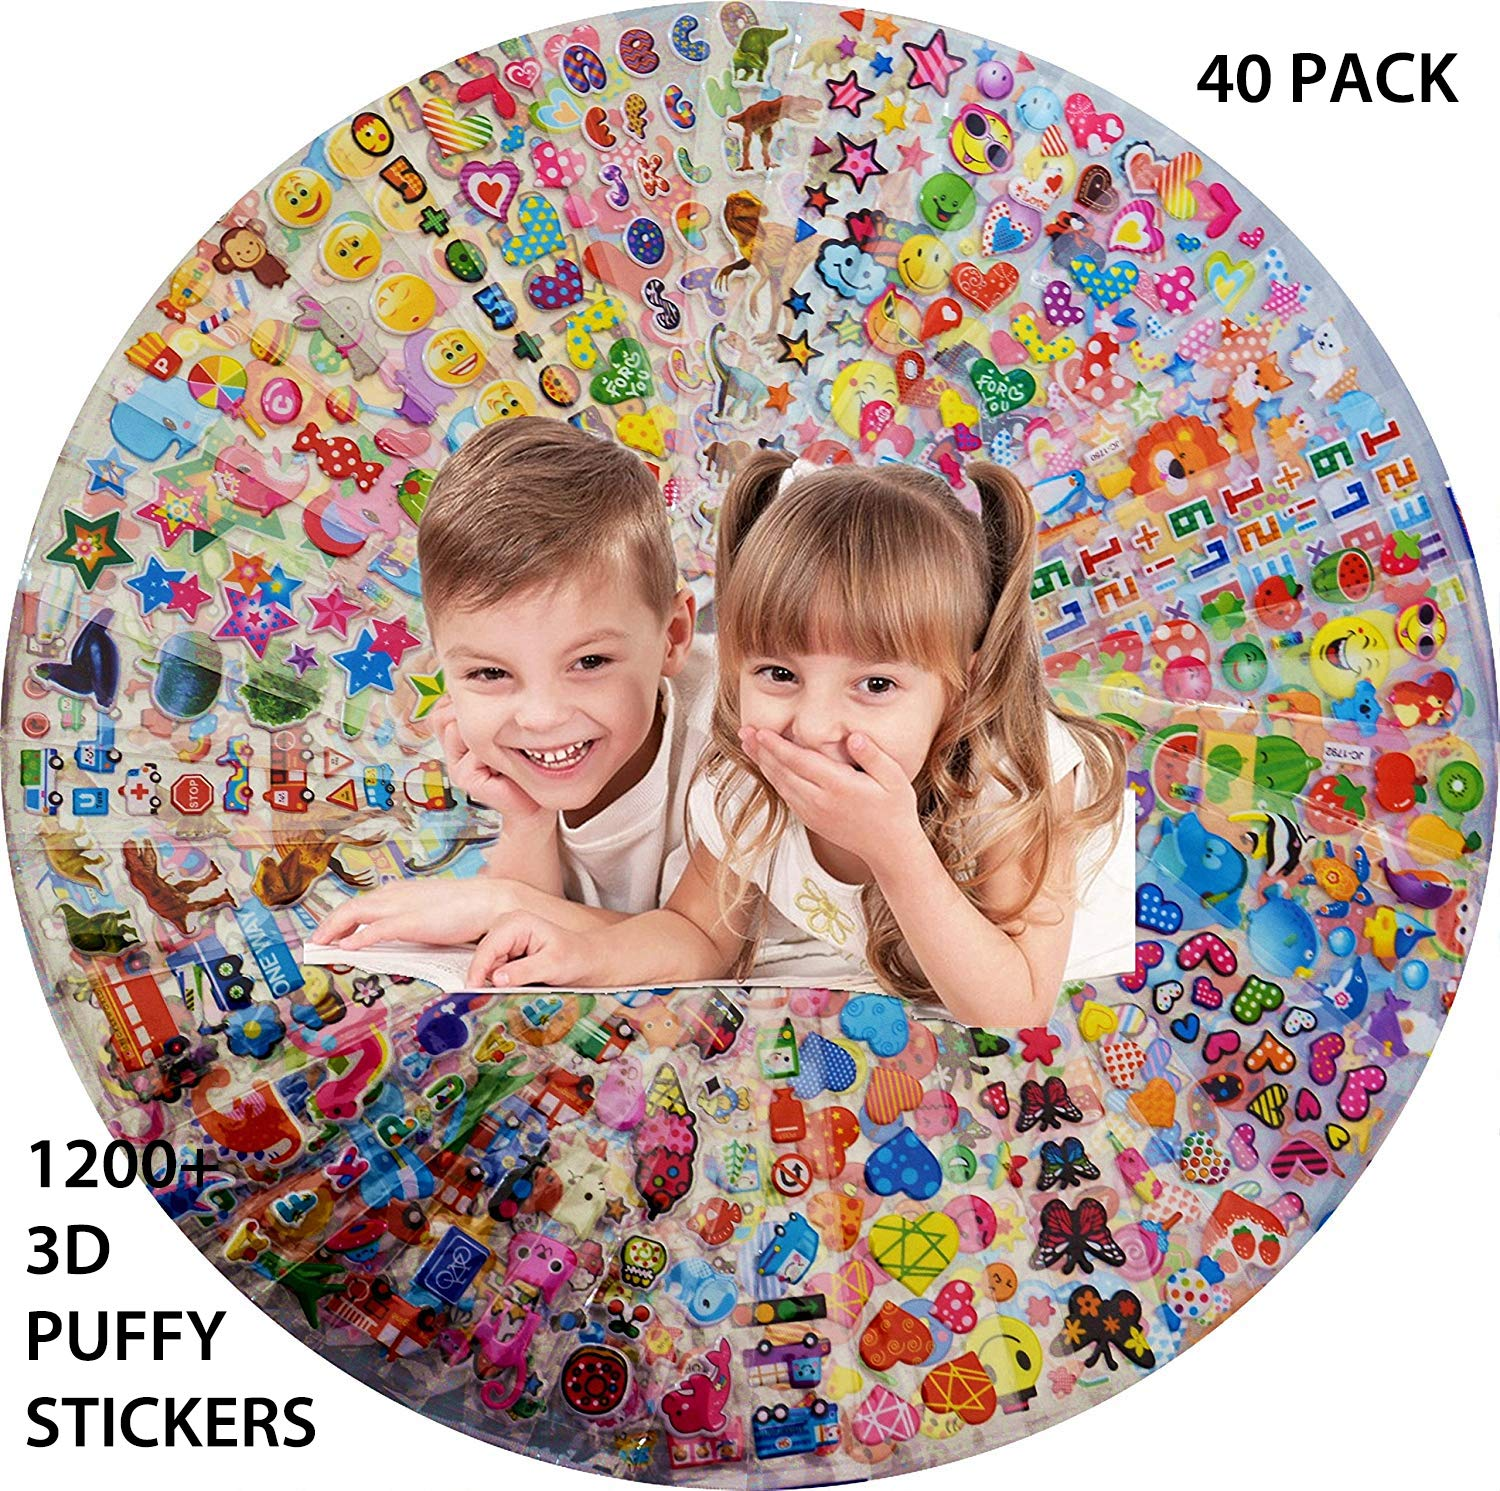 Scrapbooking Animals Including Cartoons Cars Toddlers Fruits vegetables Stickers for Kids 40 Sheets No Repeat 3D Puffy and More Girls Teachers Bulk stickers for Girl Boy Birthday Gift